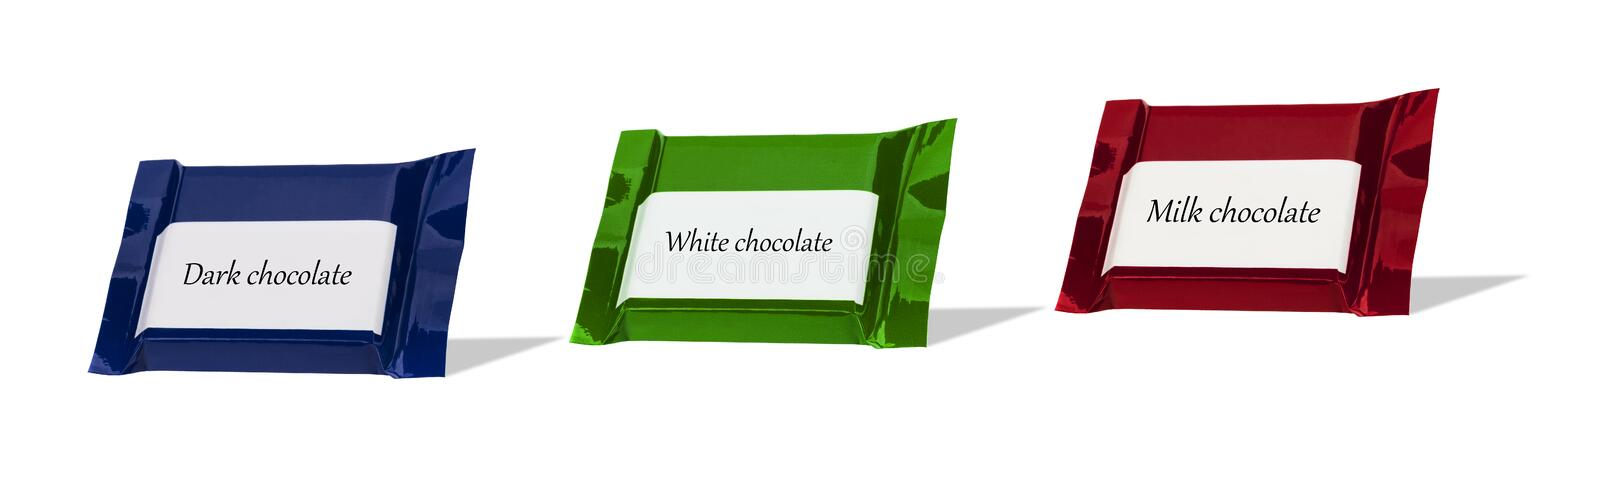 Download Chocolate Wraped In Colorful Foil Stock Image - Image of electric, temptation: 83721677